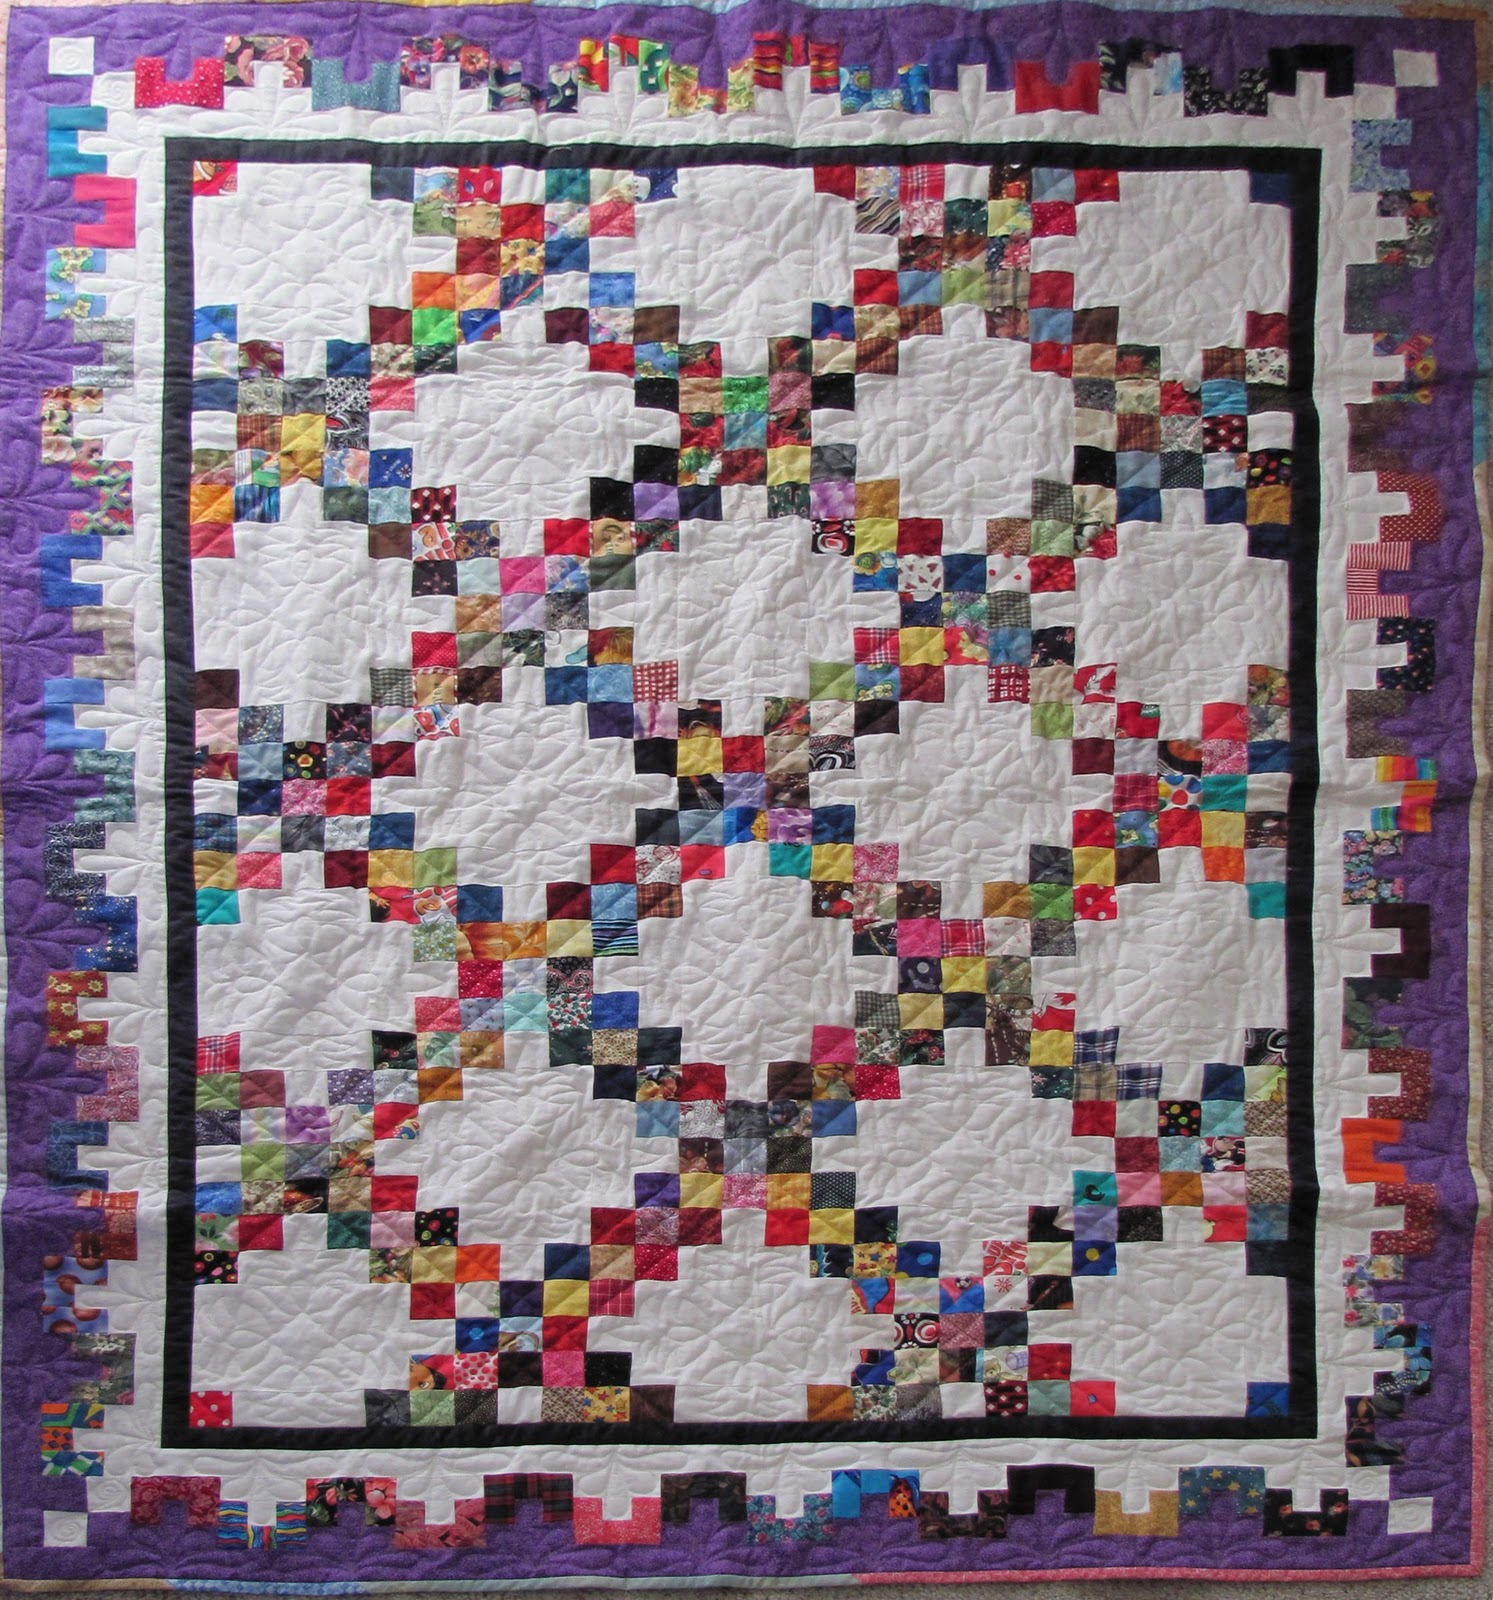 Irish Quilting Designs : The Proficient Needle: Completed Scrappy Irish Chain